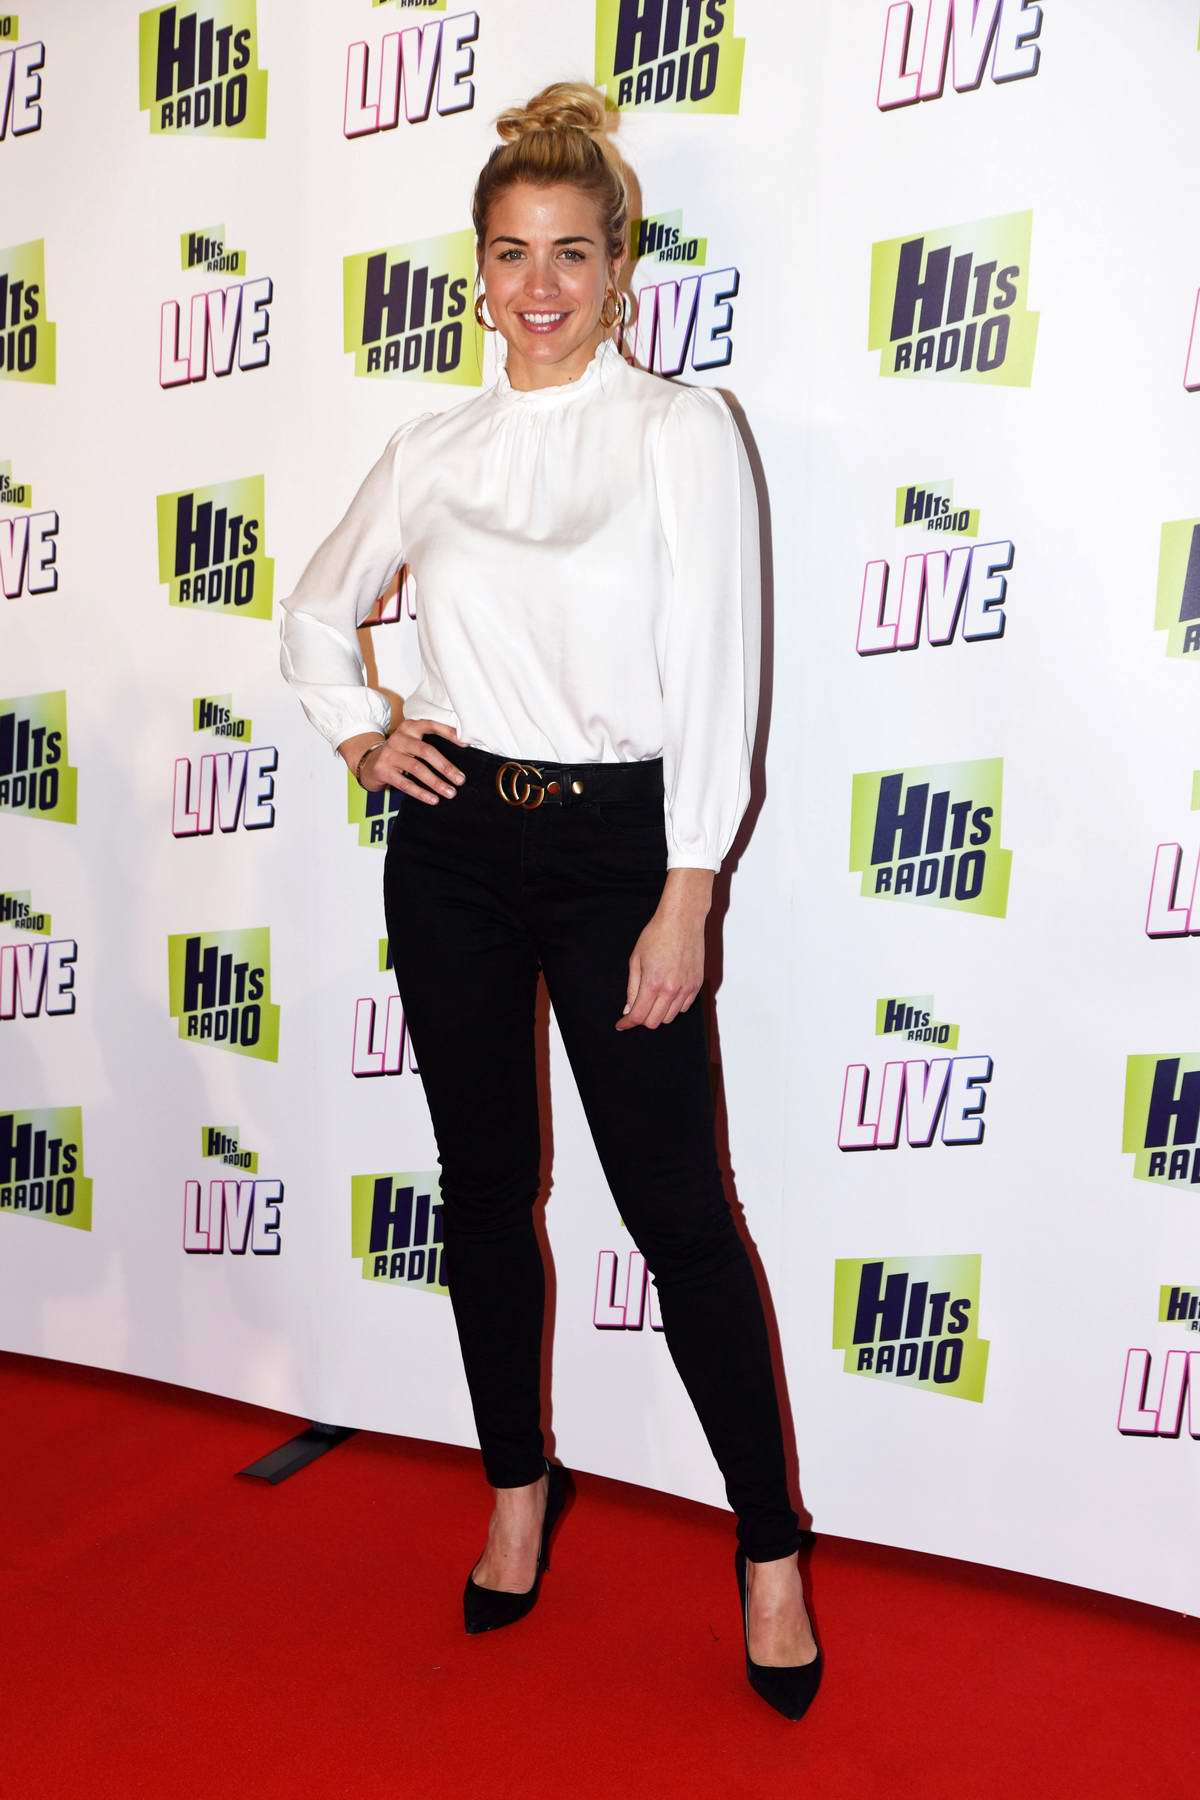 Gemma Atkinson attends Hits Radio Live 2018 at Manchester Arena in Manchester, UK